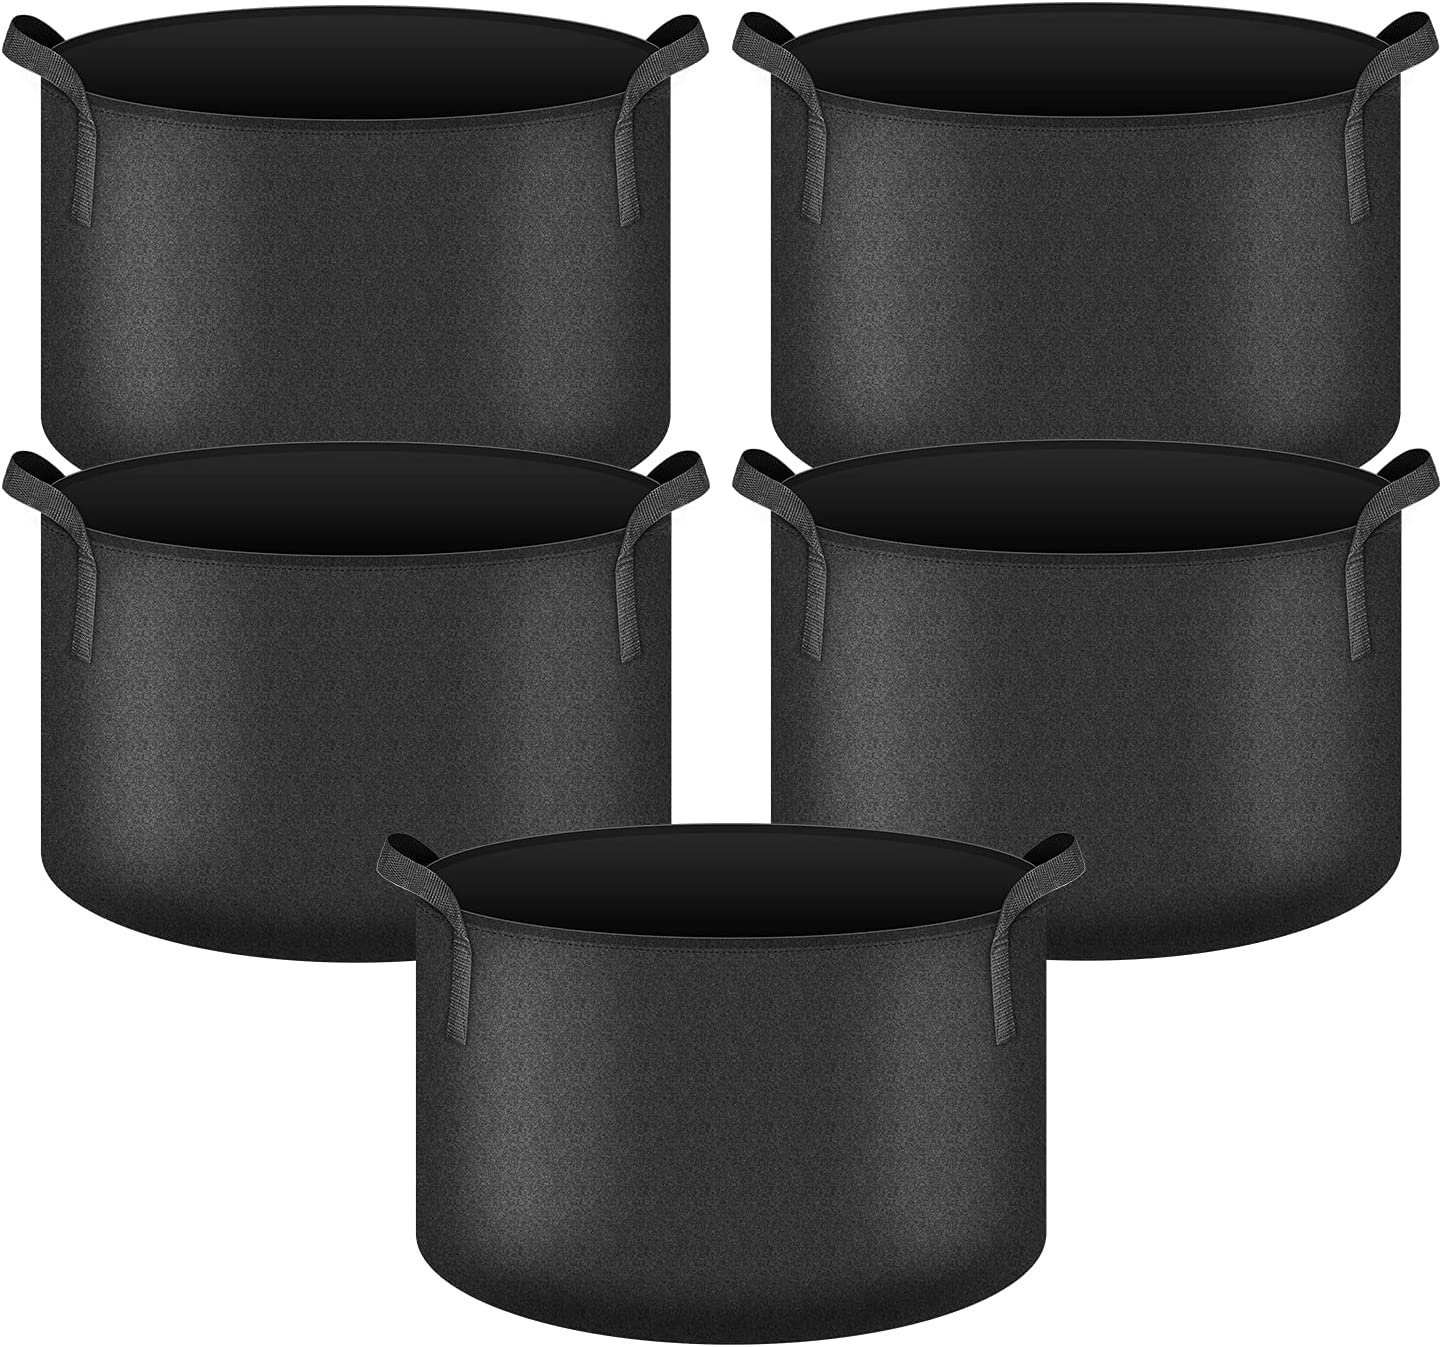 iPower 5-Pack 20 Gallon Plant Grow Bags Heavy Duty Thickened Nonwoven Aeration Fabric Pots Durable Container, with Strap Handles for Garden, Black